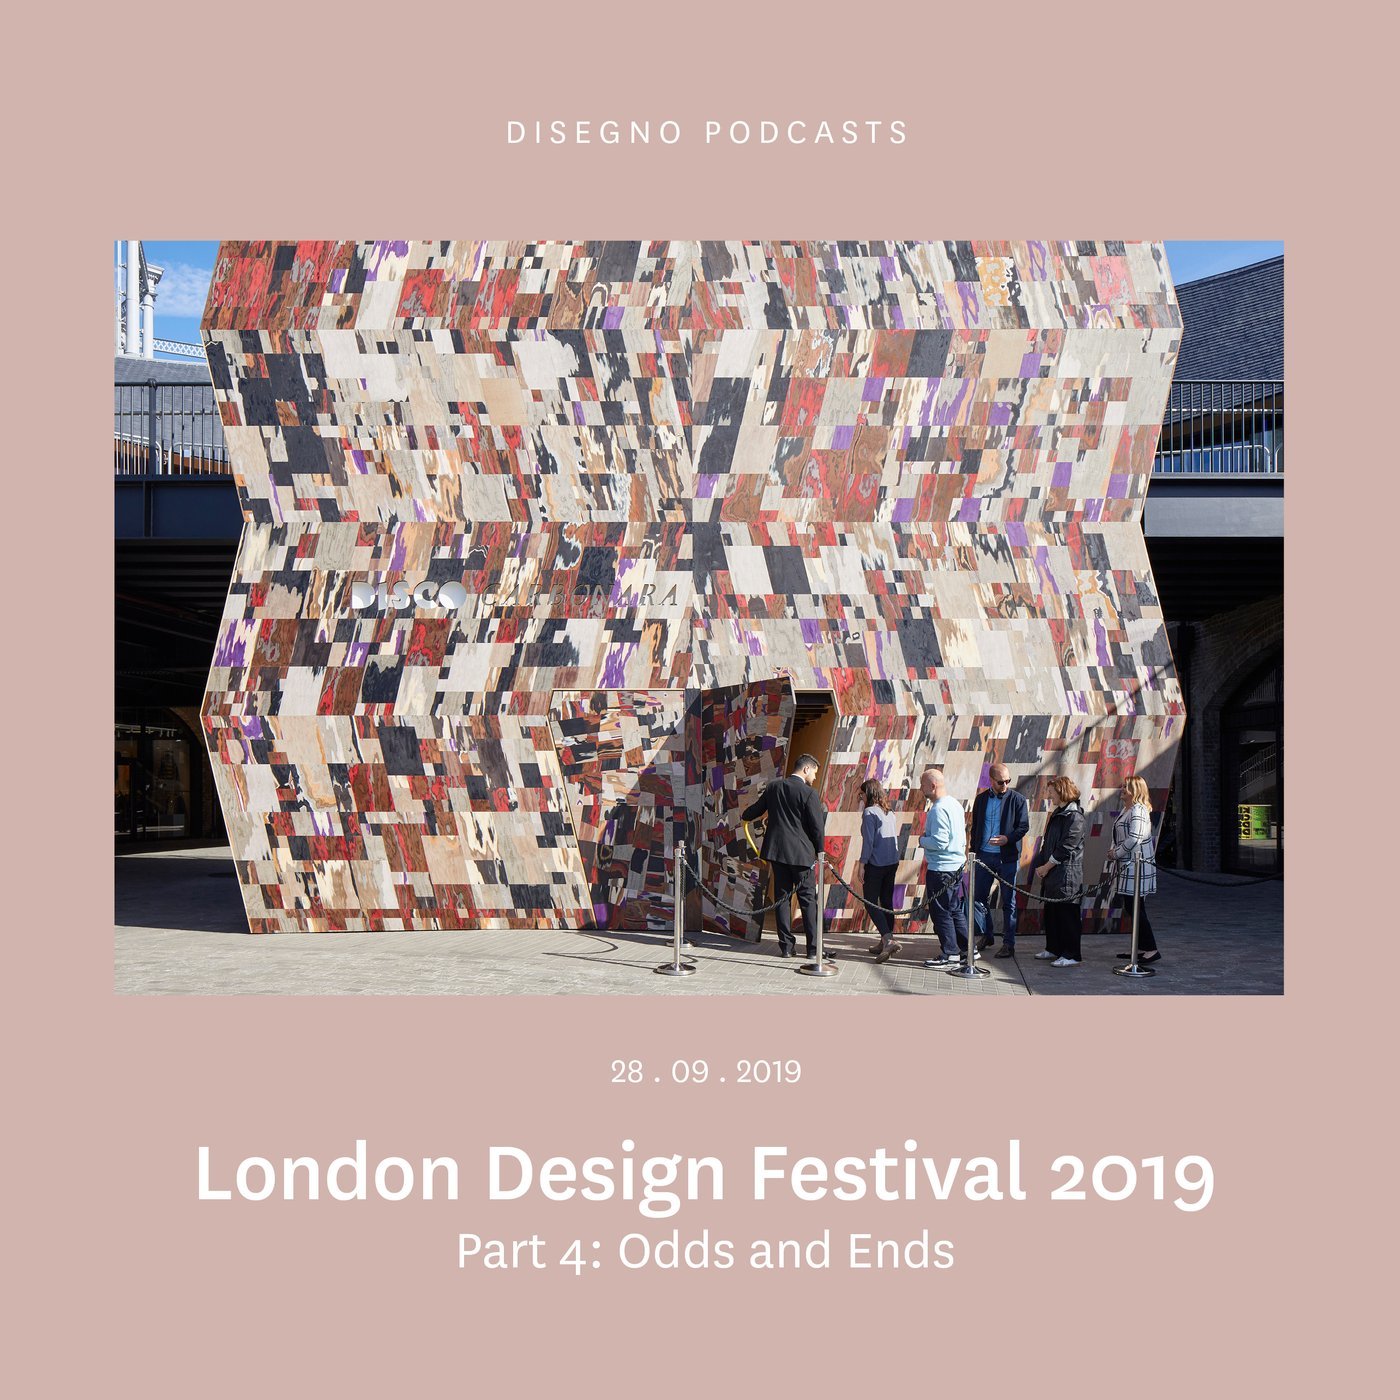 London Design Festival 2019: Odds and Ends